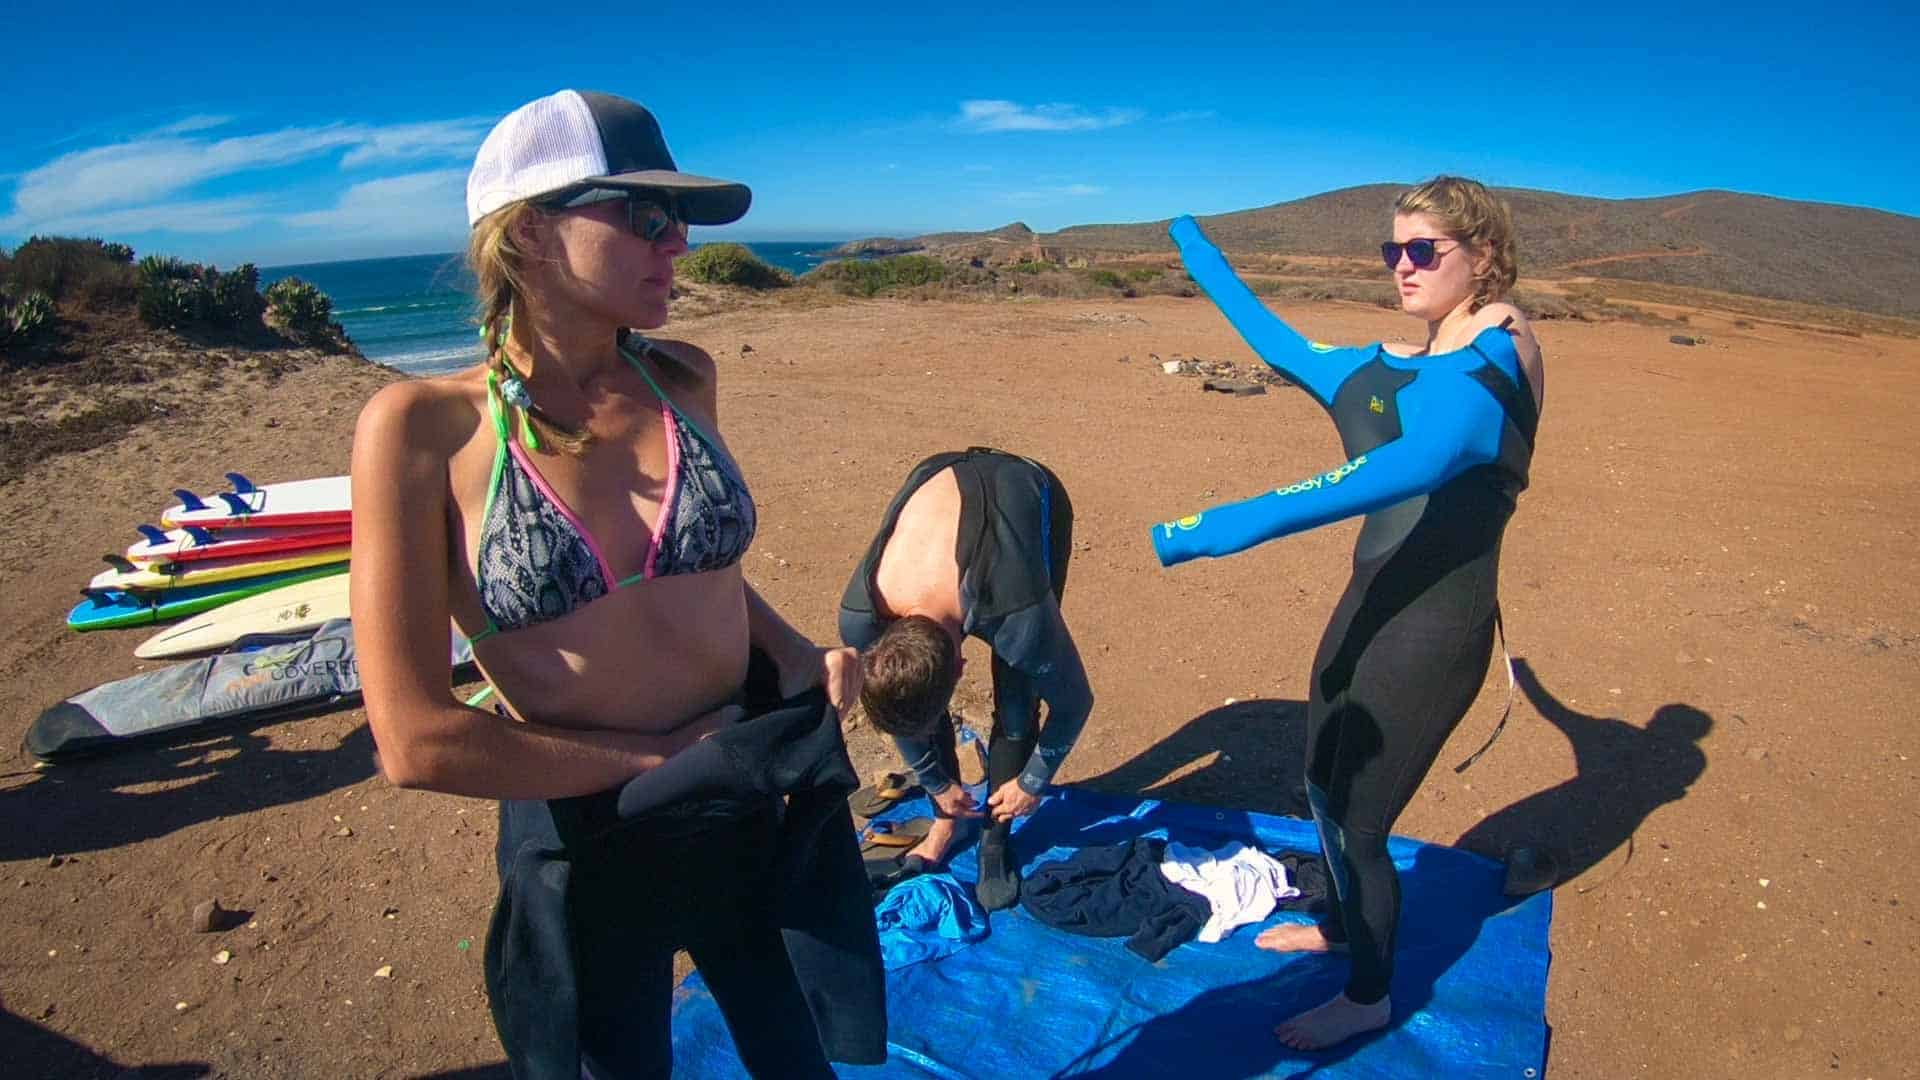 Adventure-in-a-backpack-baja-california-surf-tour-41